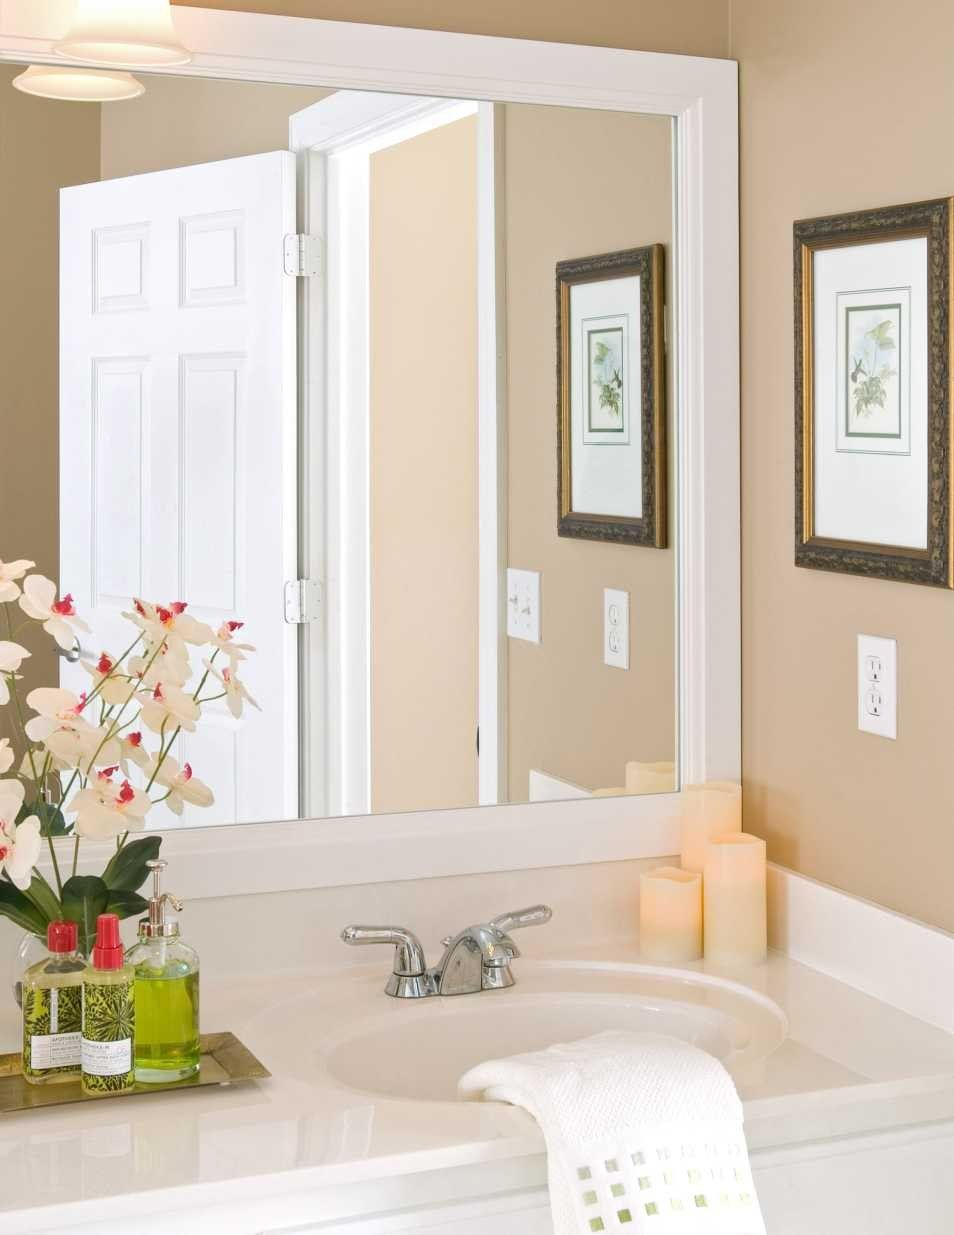 White Framed Bathroom Mirrors Mirrors Pinterest Frame Bathroom Mirrors Bathroom Mirrors